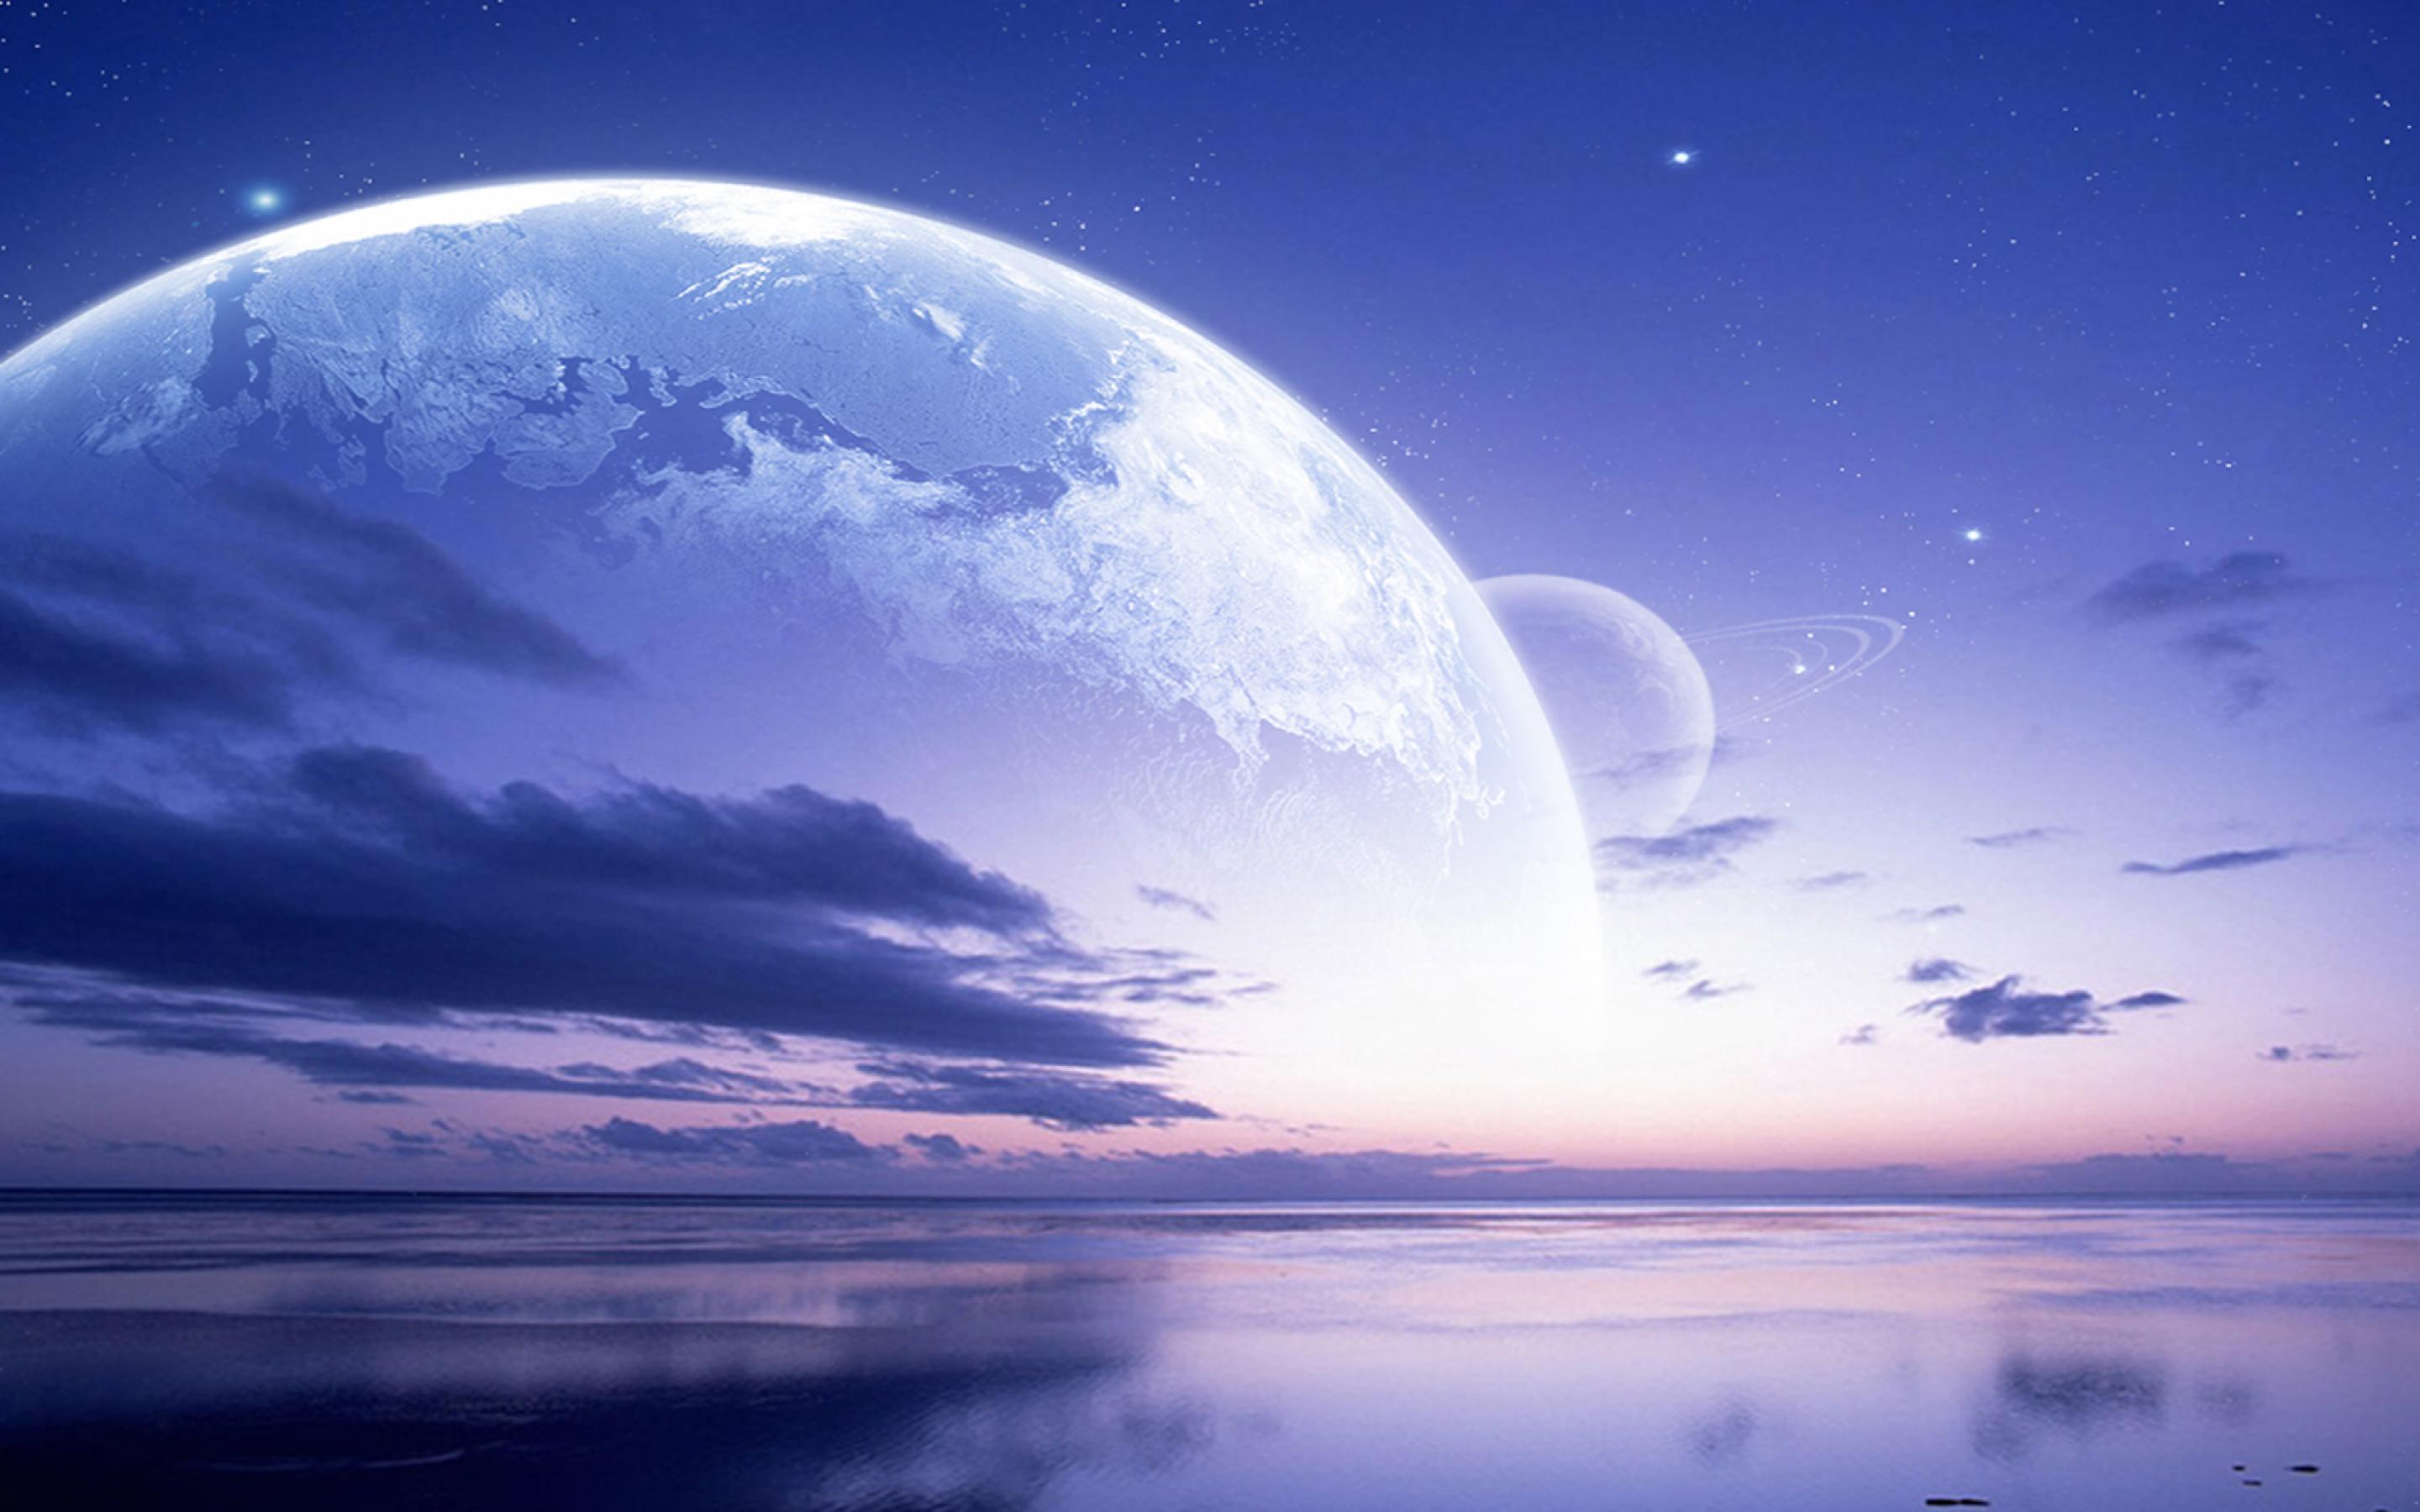 Hd wallpaper universe - Hd Wallpapers Space Universe Widescreen 2 Hd Wallpapers Hdimges